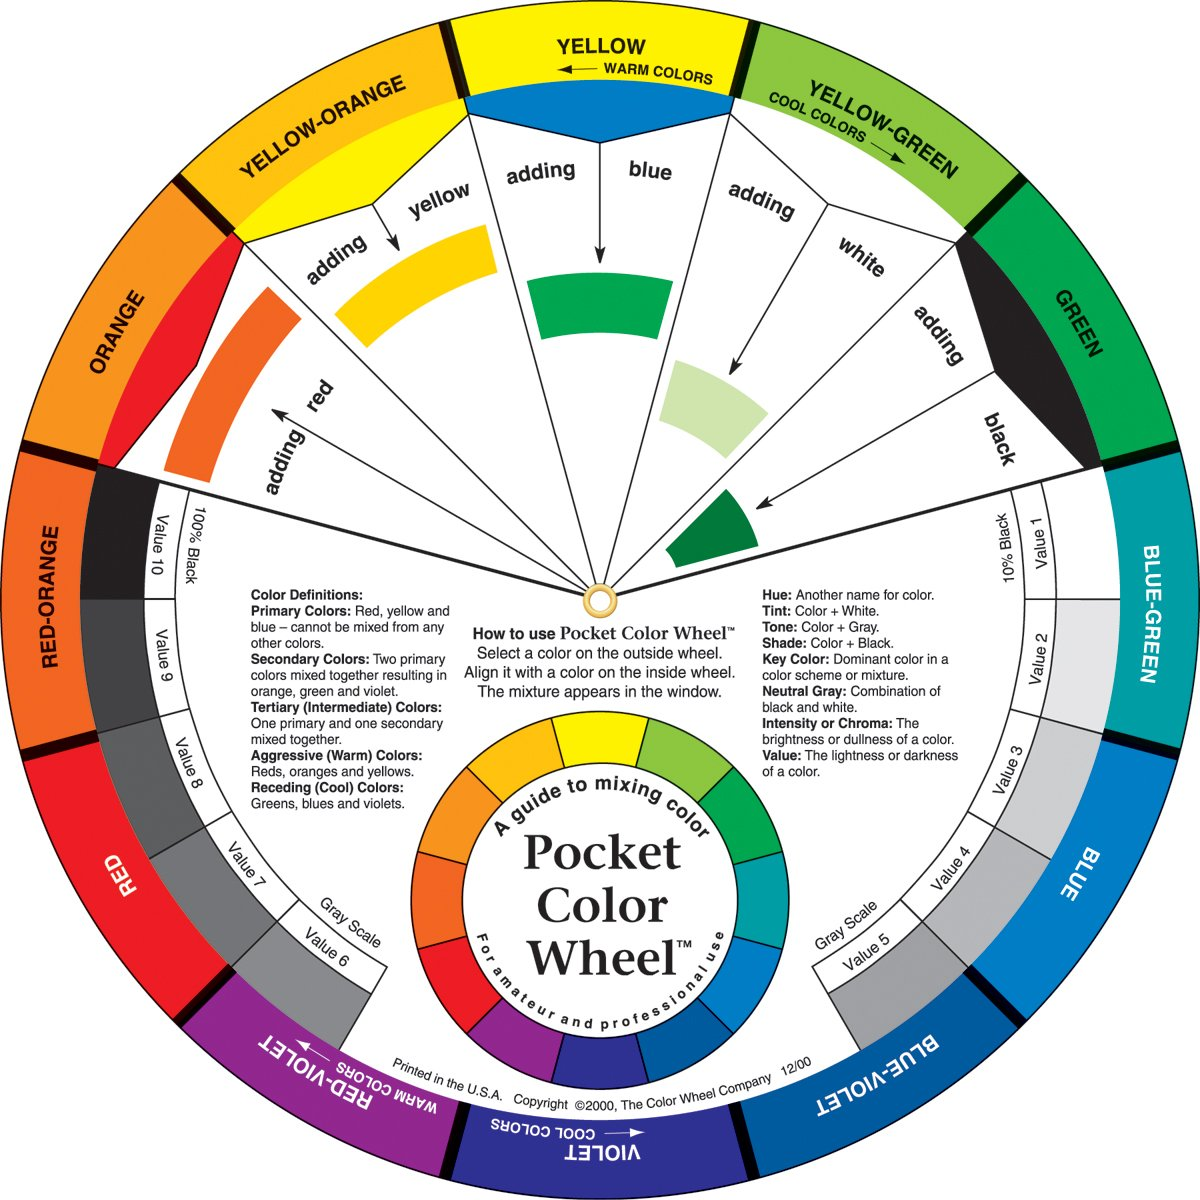 Color Wheel Aiuto per Mescolare i Colori The Color Wheel 3501